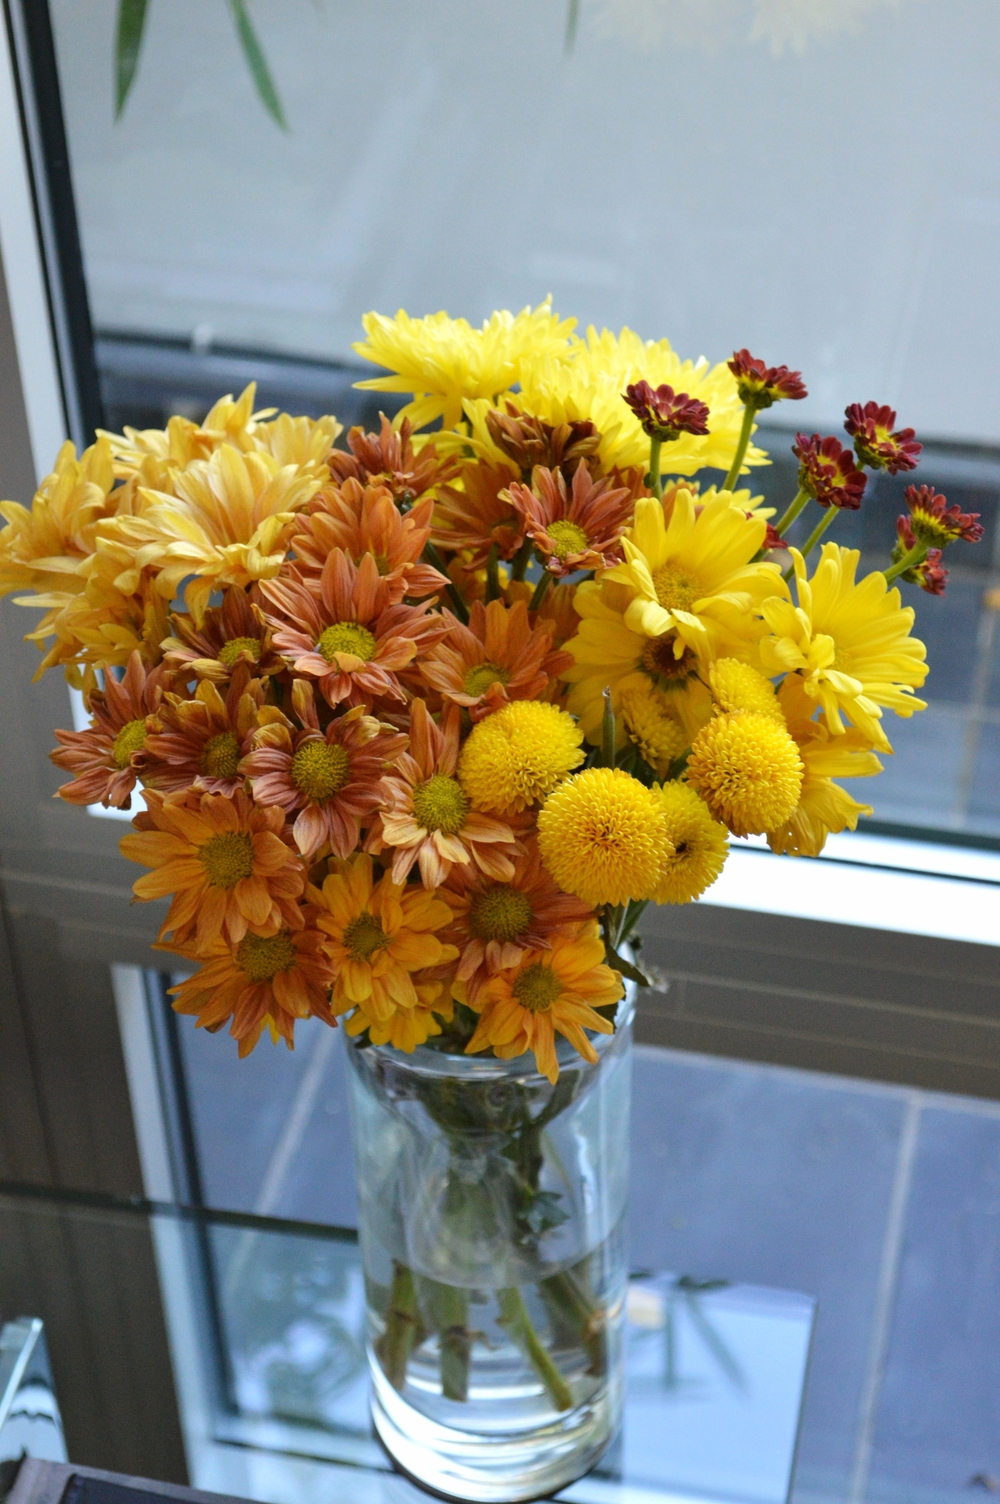 LaurenSchwaiger-Life-Style-Blog-Fall-Flowers.jpg